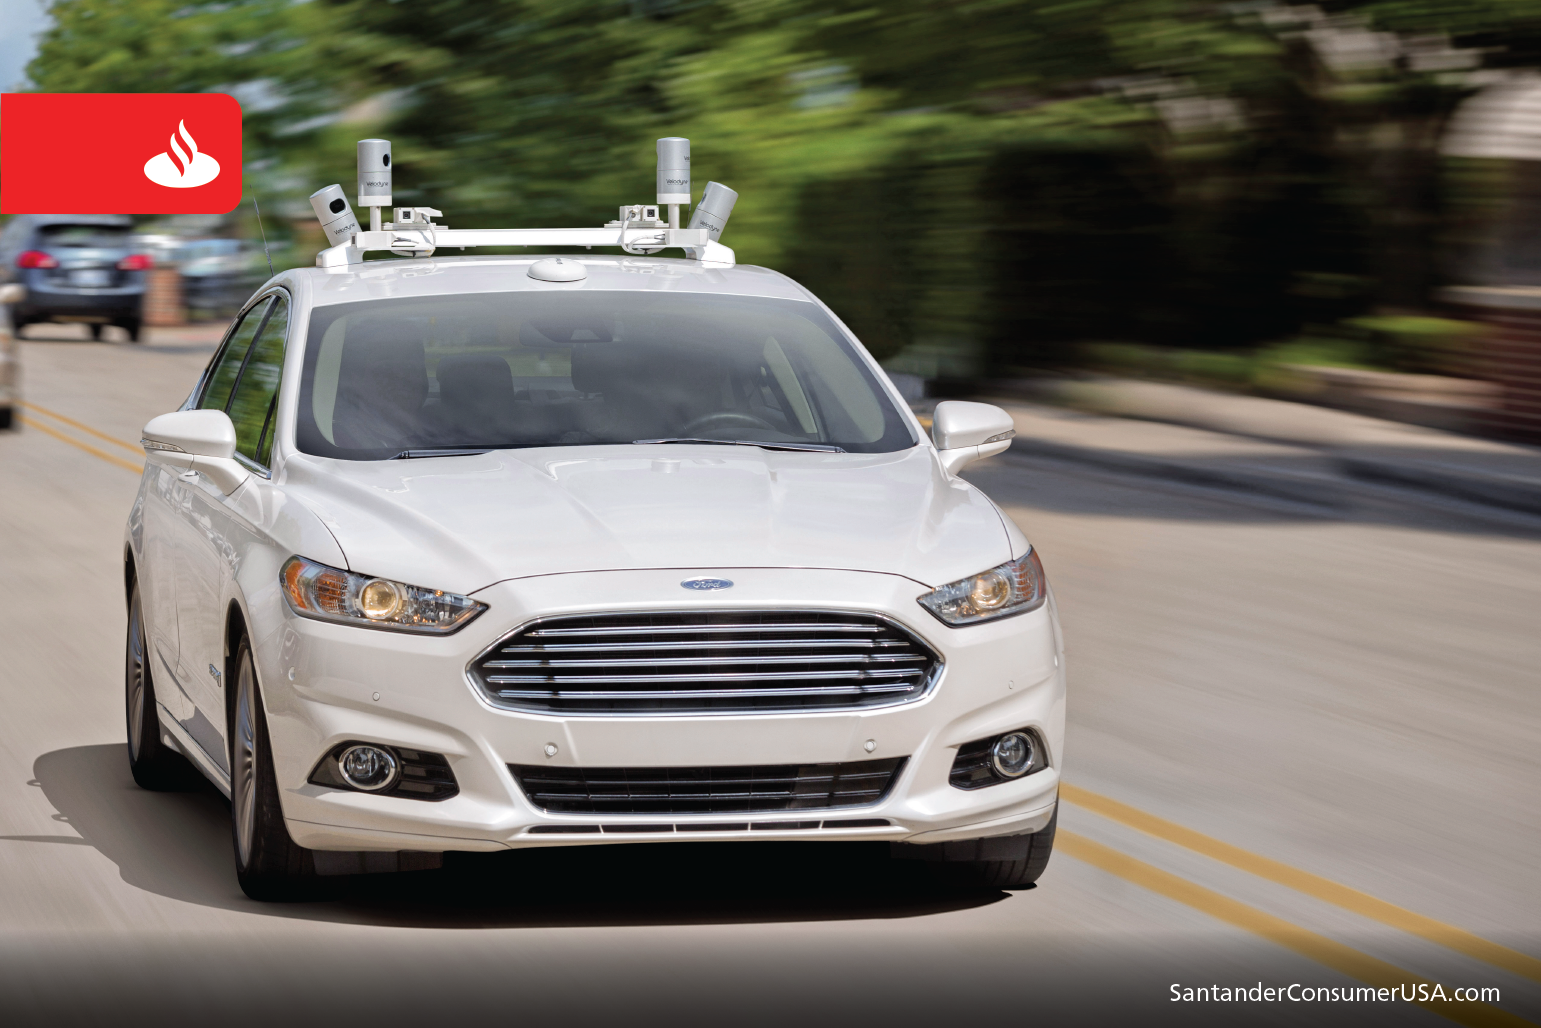 Ford Fusion Hybrid sedan autonomous vehicle on the road.